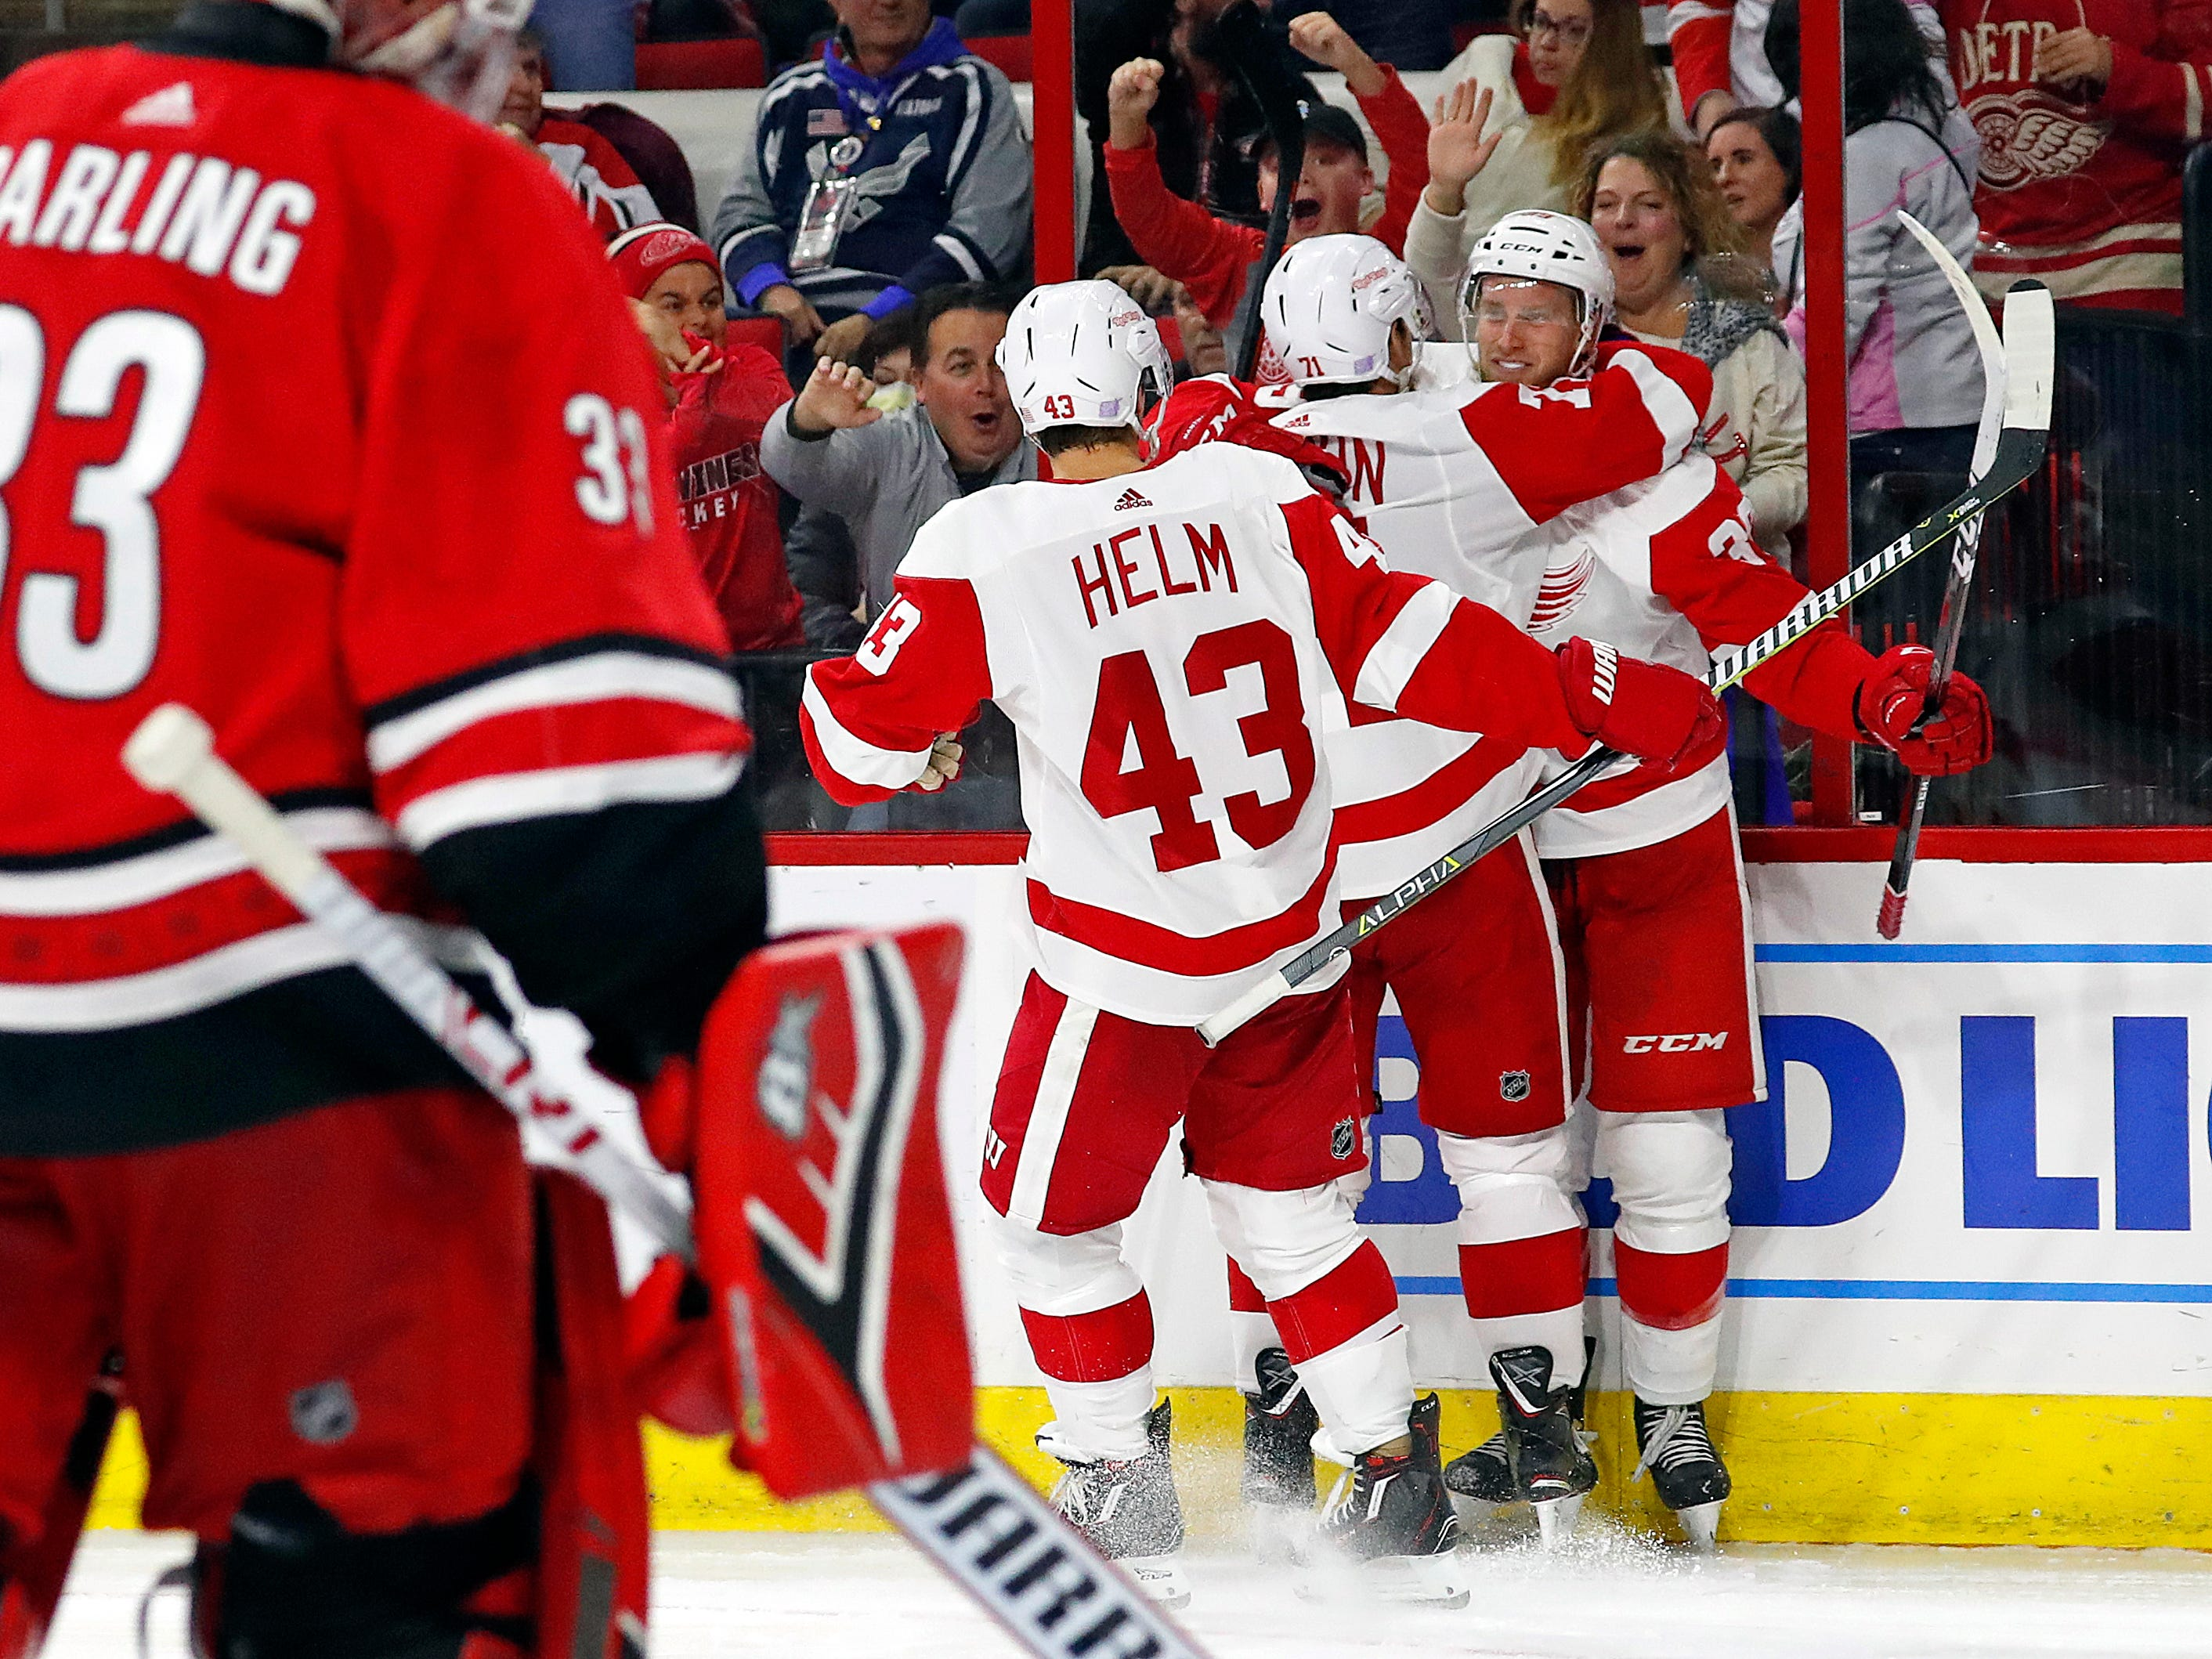 Detroit Red Wings' Anthony Mantha (39) celebrates his second goal of the night with teammates Dylan Larkin (71) and Darren Helm (43) against the Carolina Hurricanes during the third period.